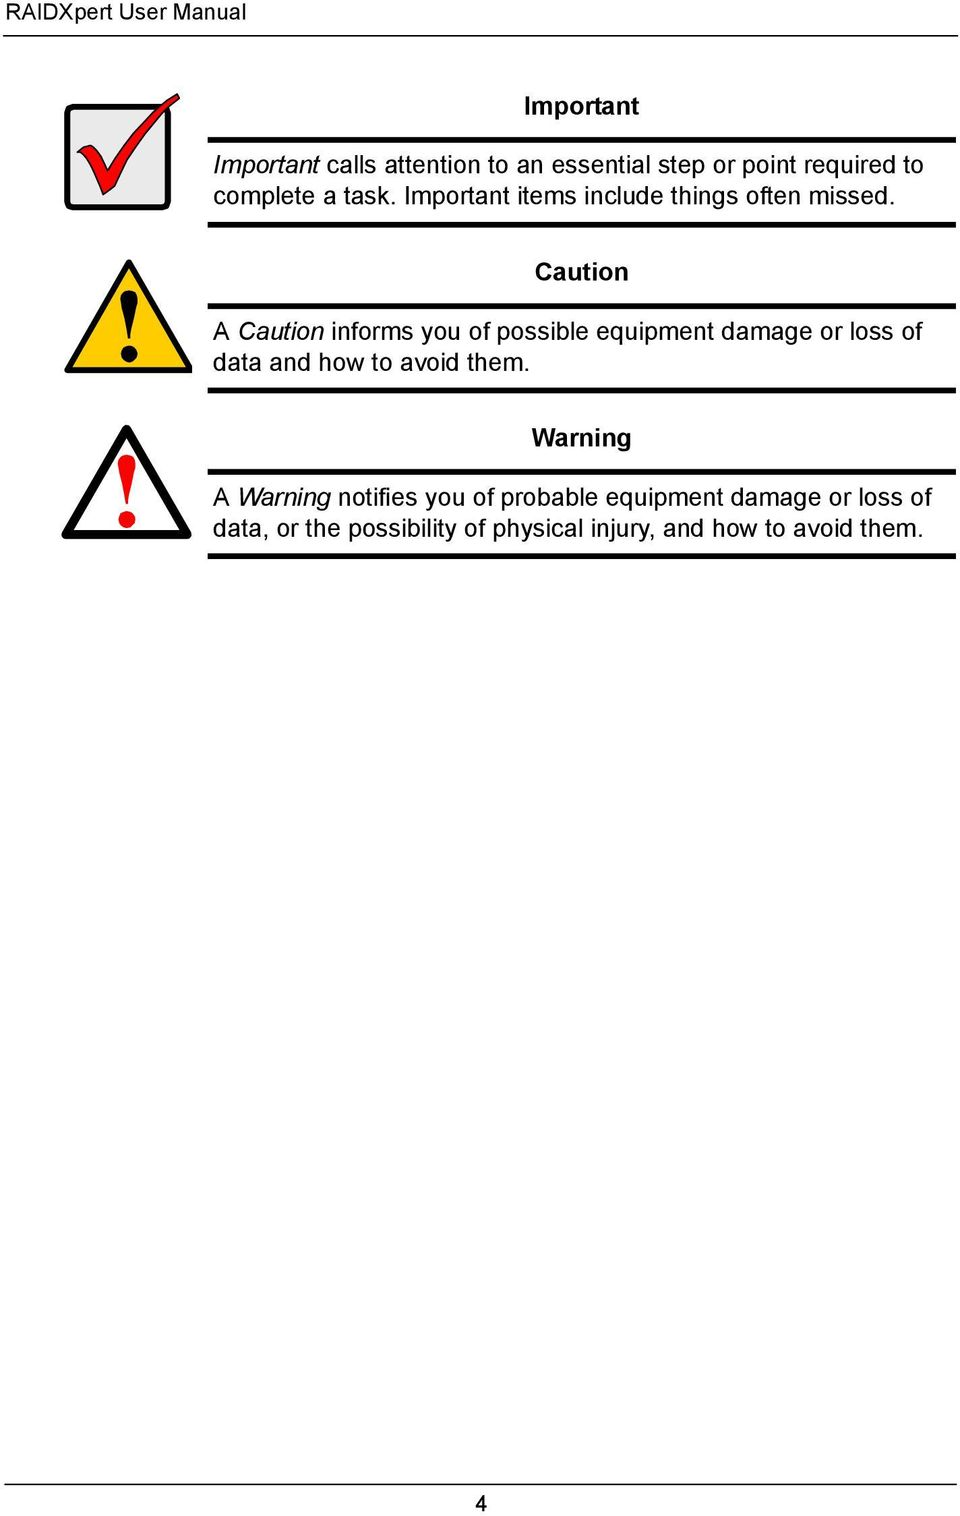 Caution A Caution informs you of possible equipment damage or loss of data and how to avoid them.